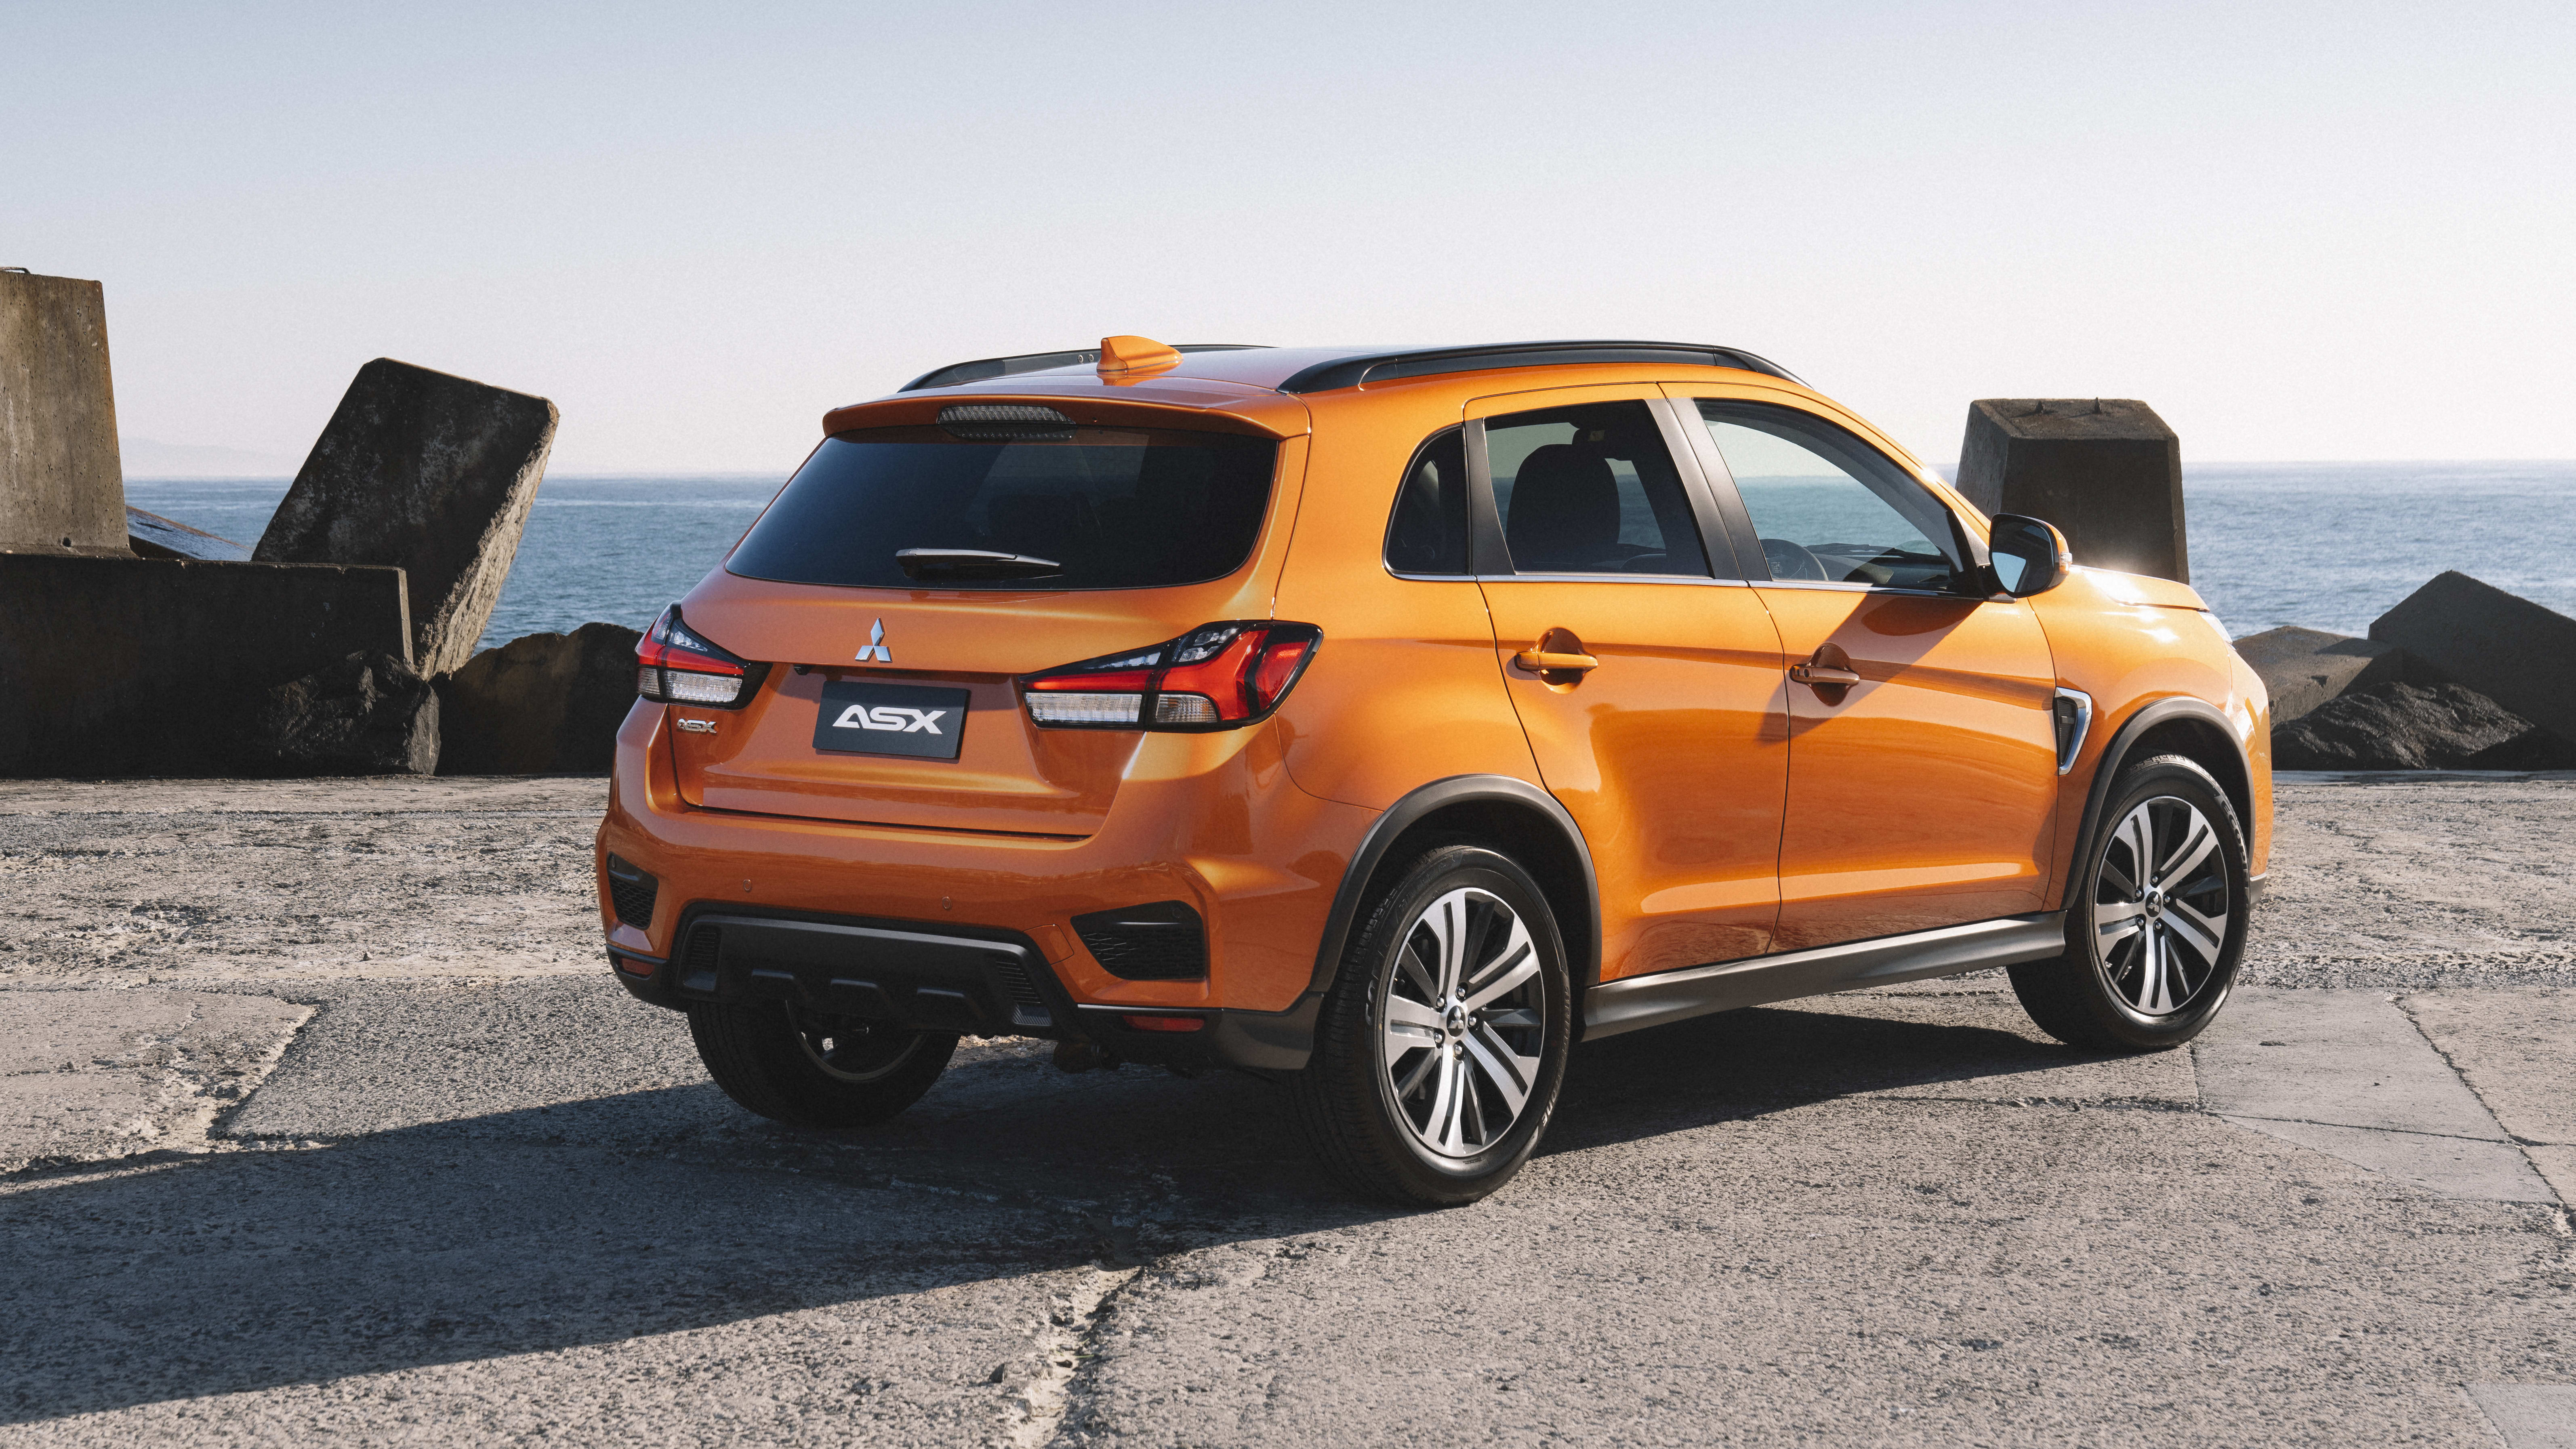 2020 Mitsubishi Asx Pricing And Specs Aeb Now Standard